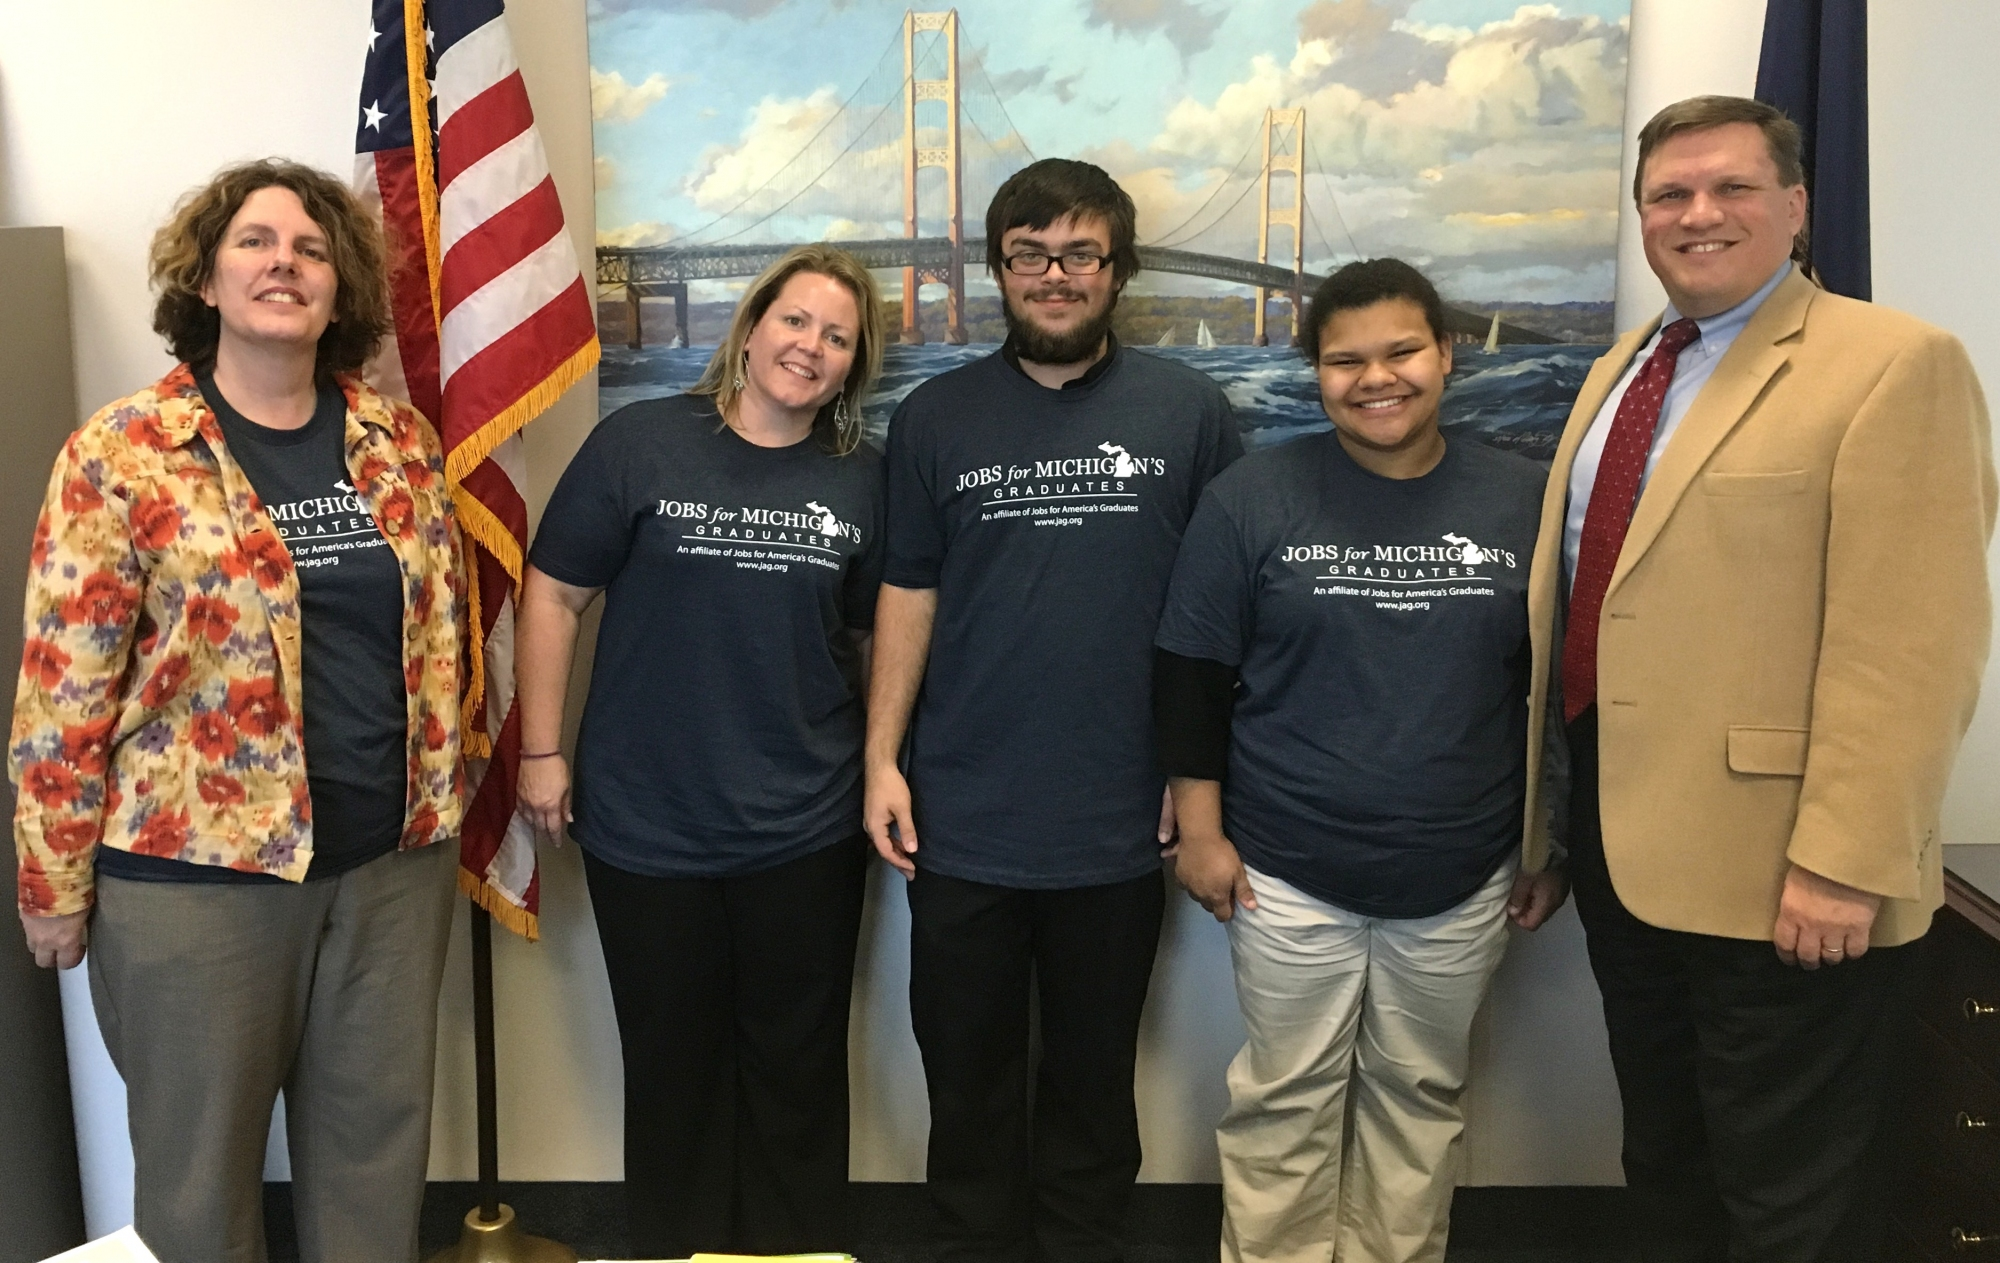 (l-r) Youth Program Administrative Assistant Michelle Goetz Grahl, Youth Advisor Dana Venhuizen, Student Dominic Rose, Student Alexis Gomez, Senator Wayne Schmidt